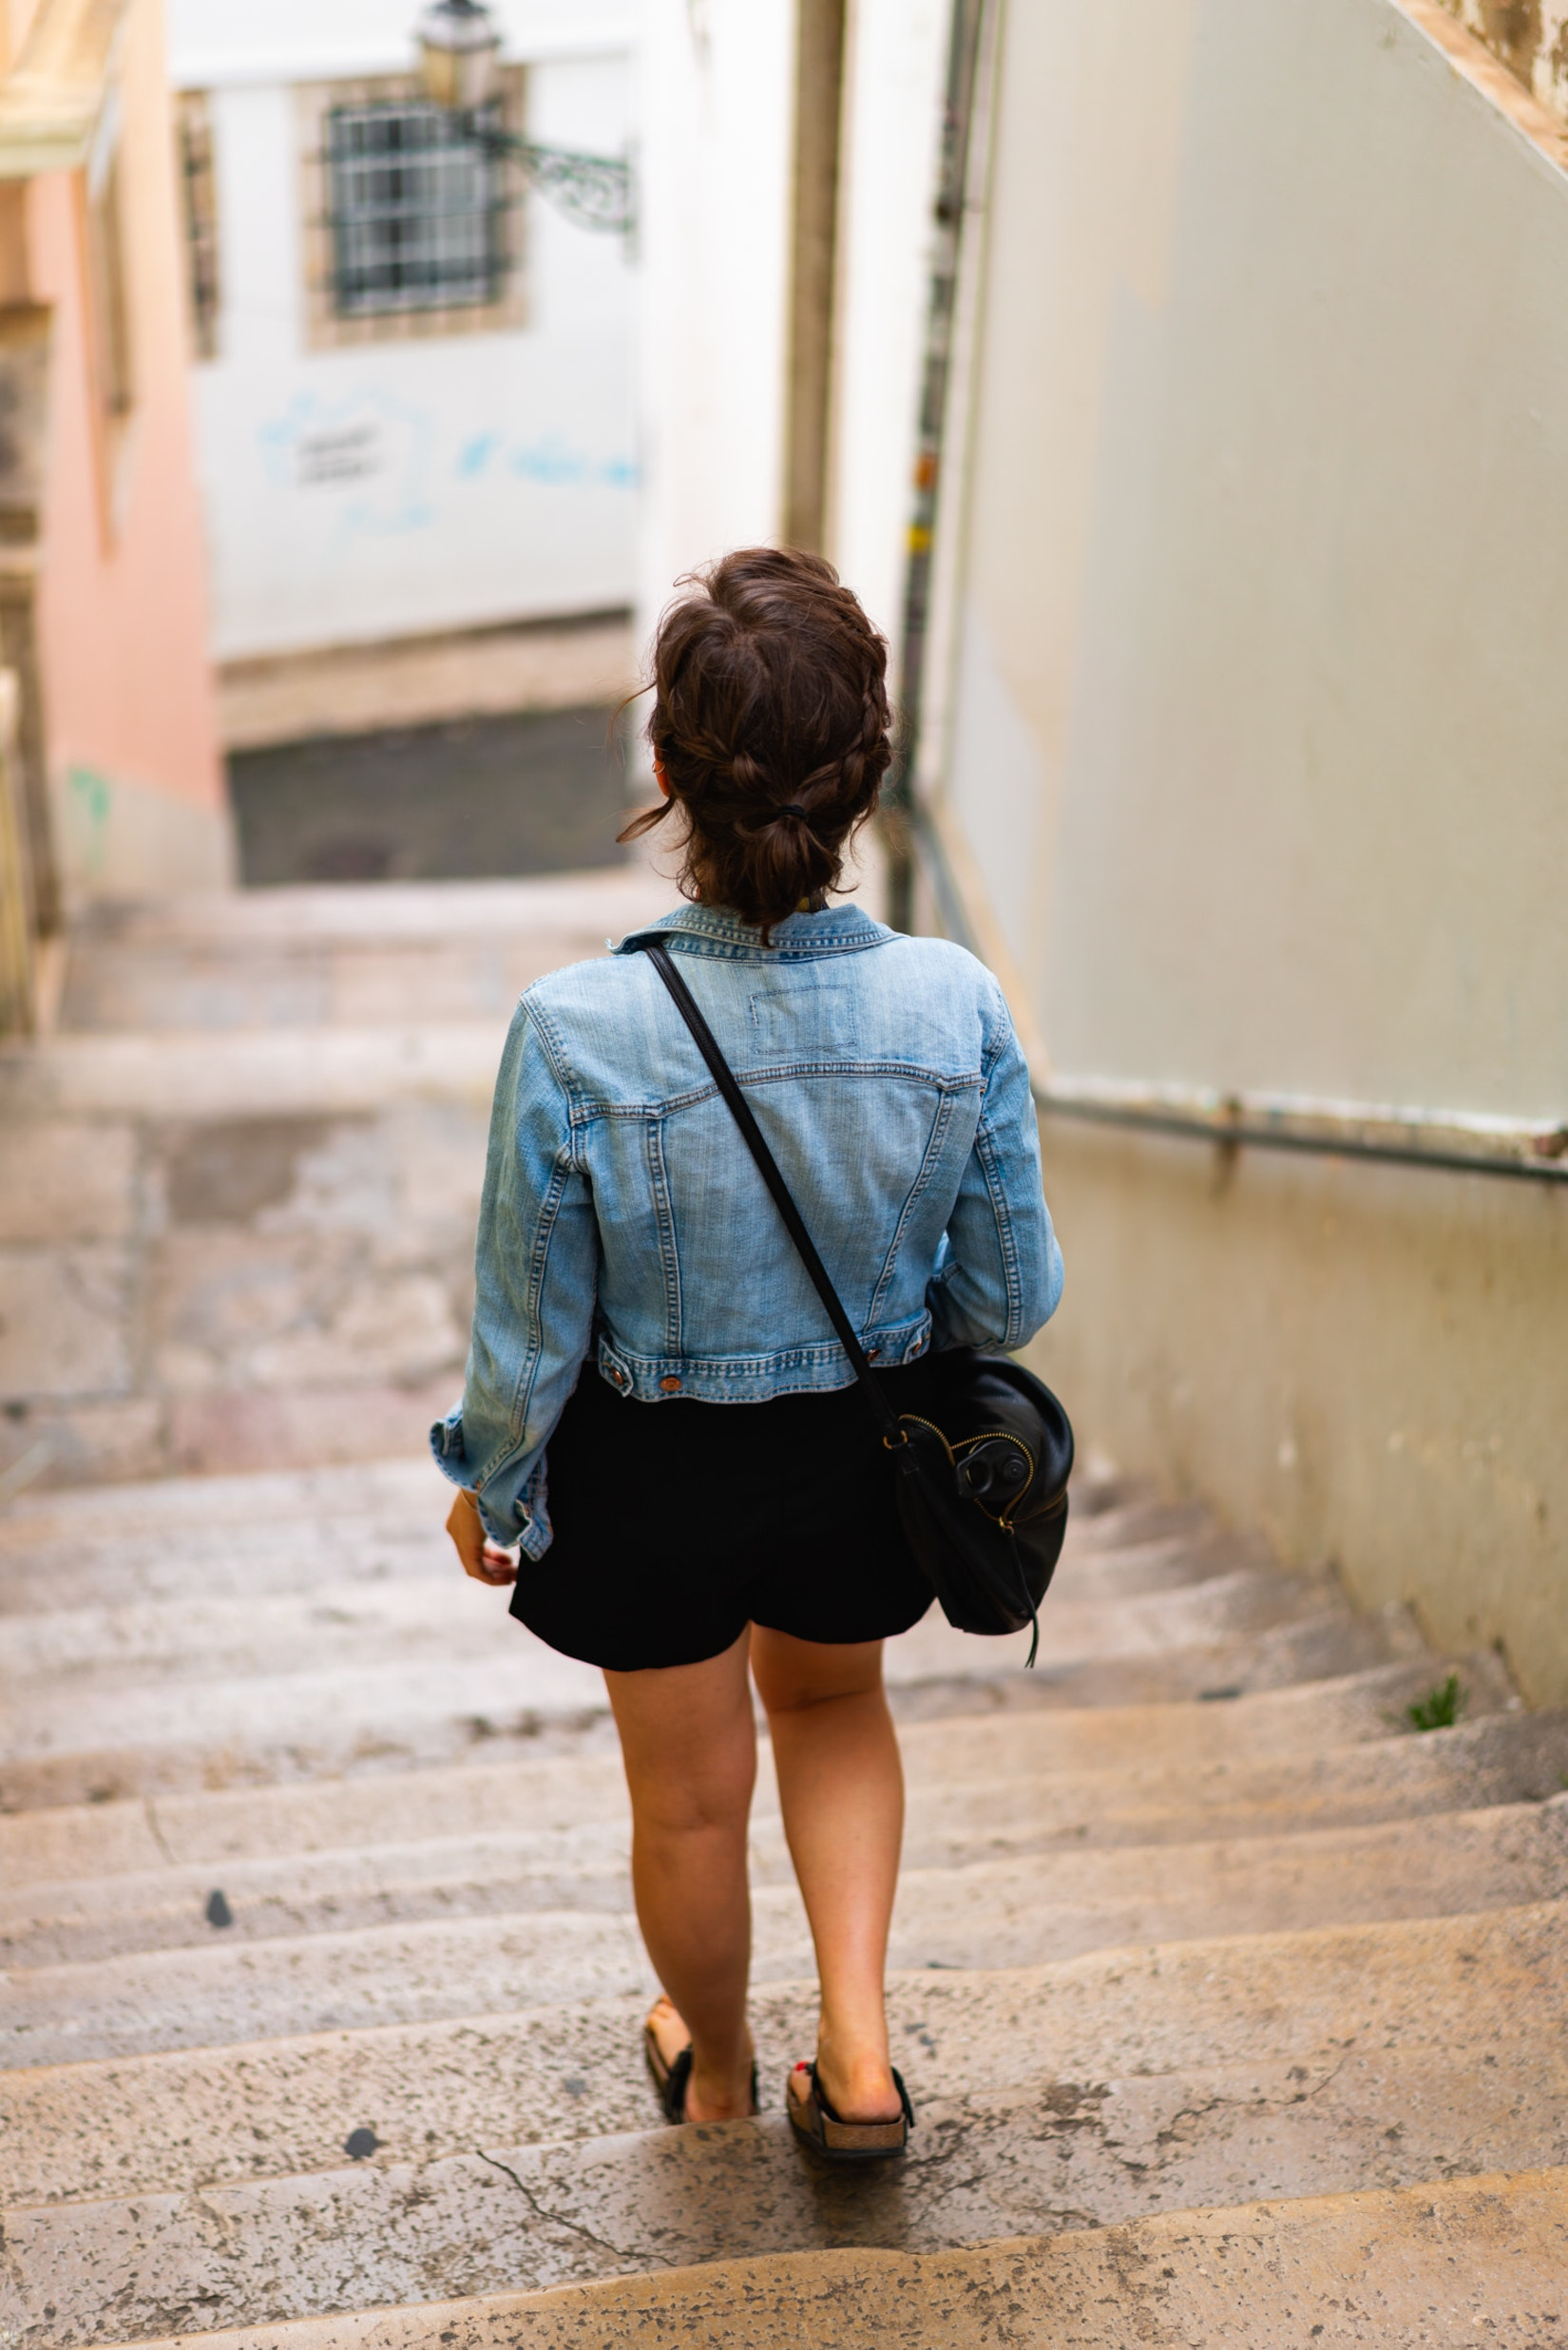 Girl walking on stairs in the Alfama neighborhood in Lisbon